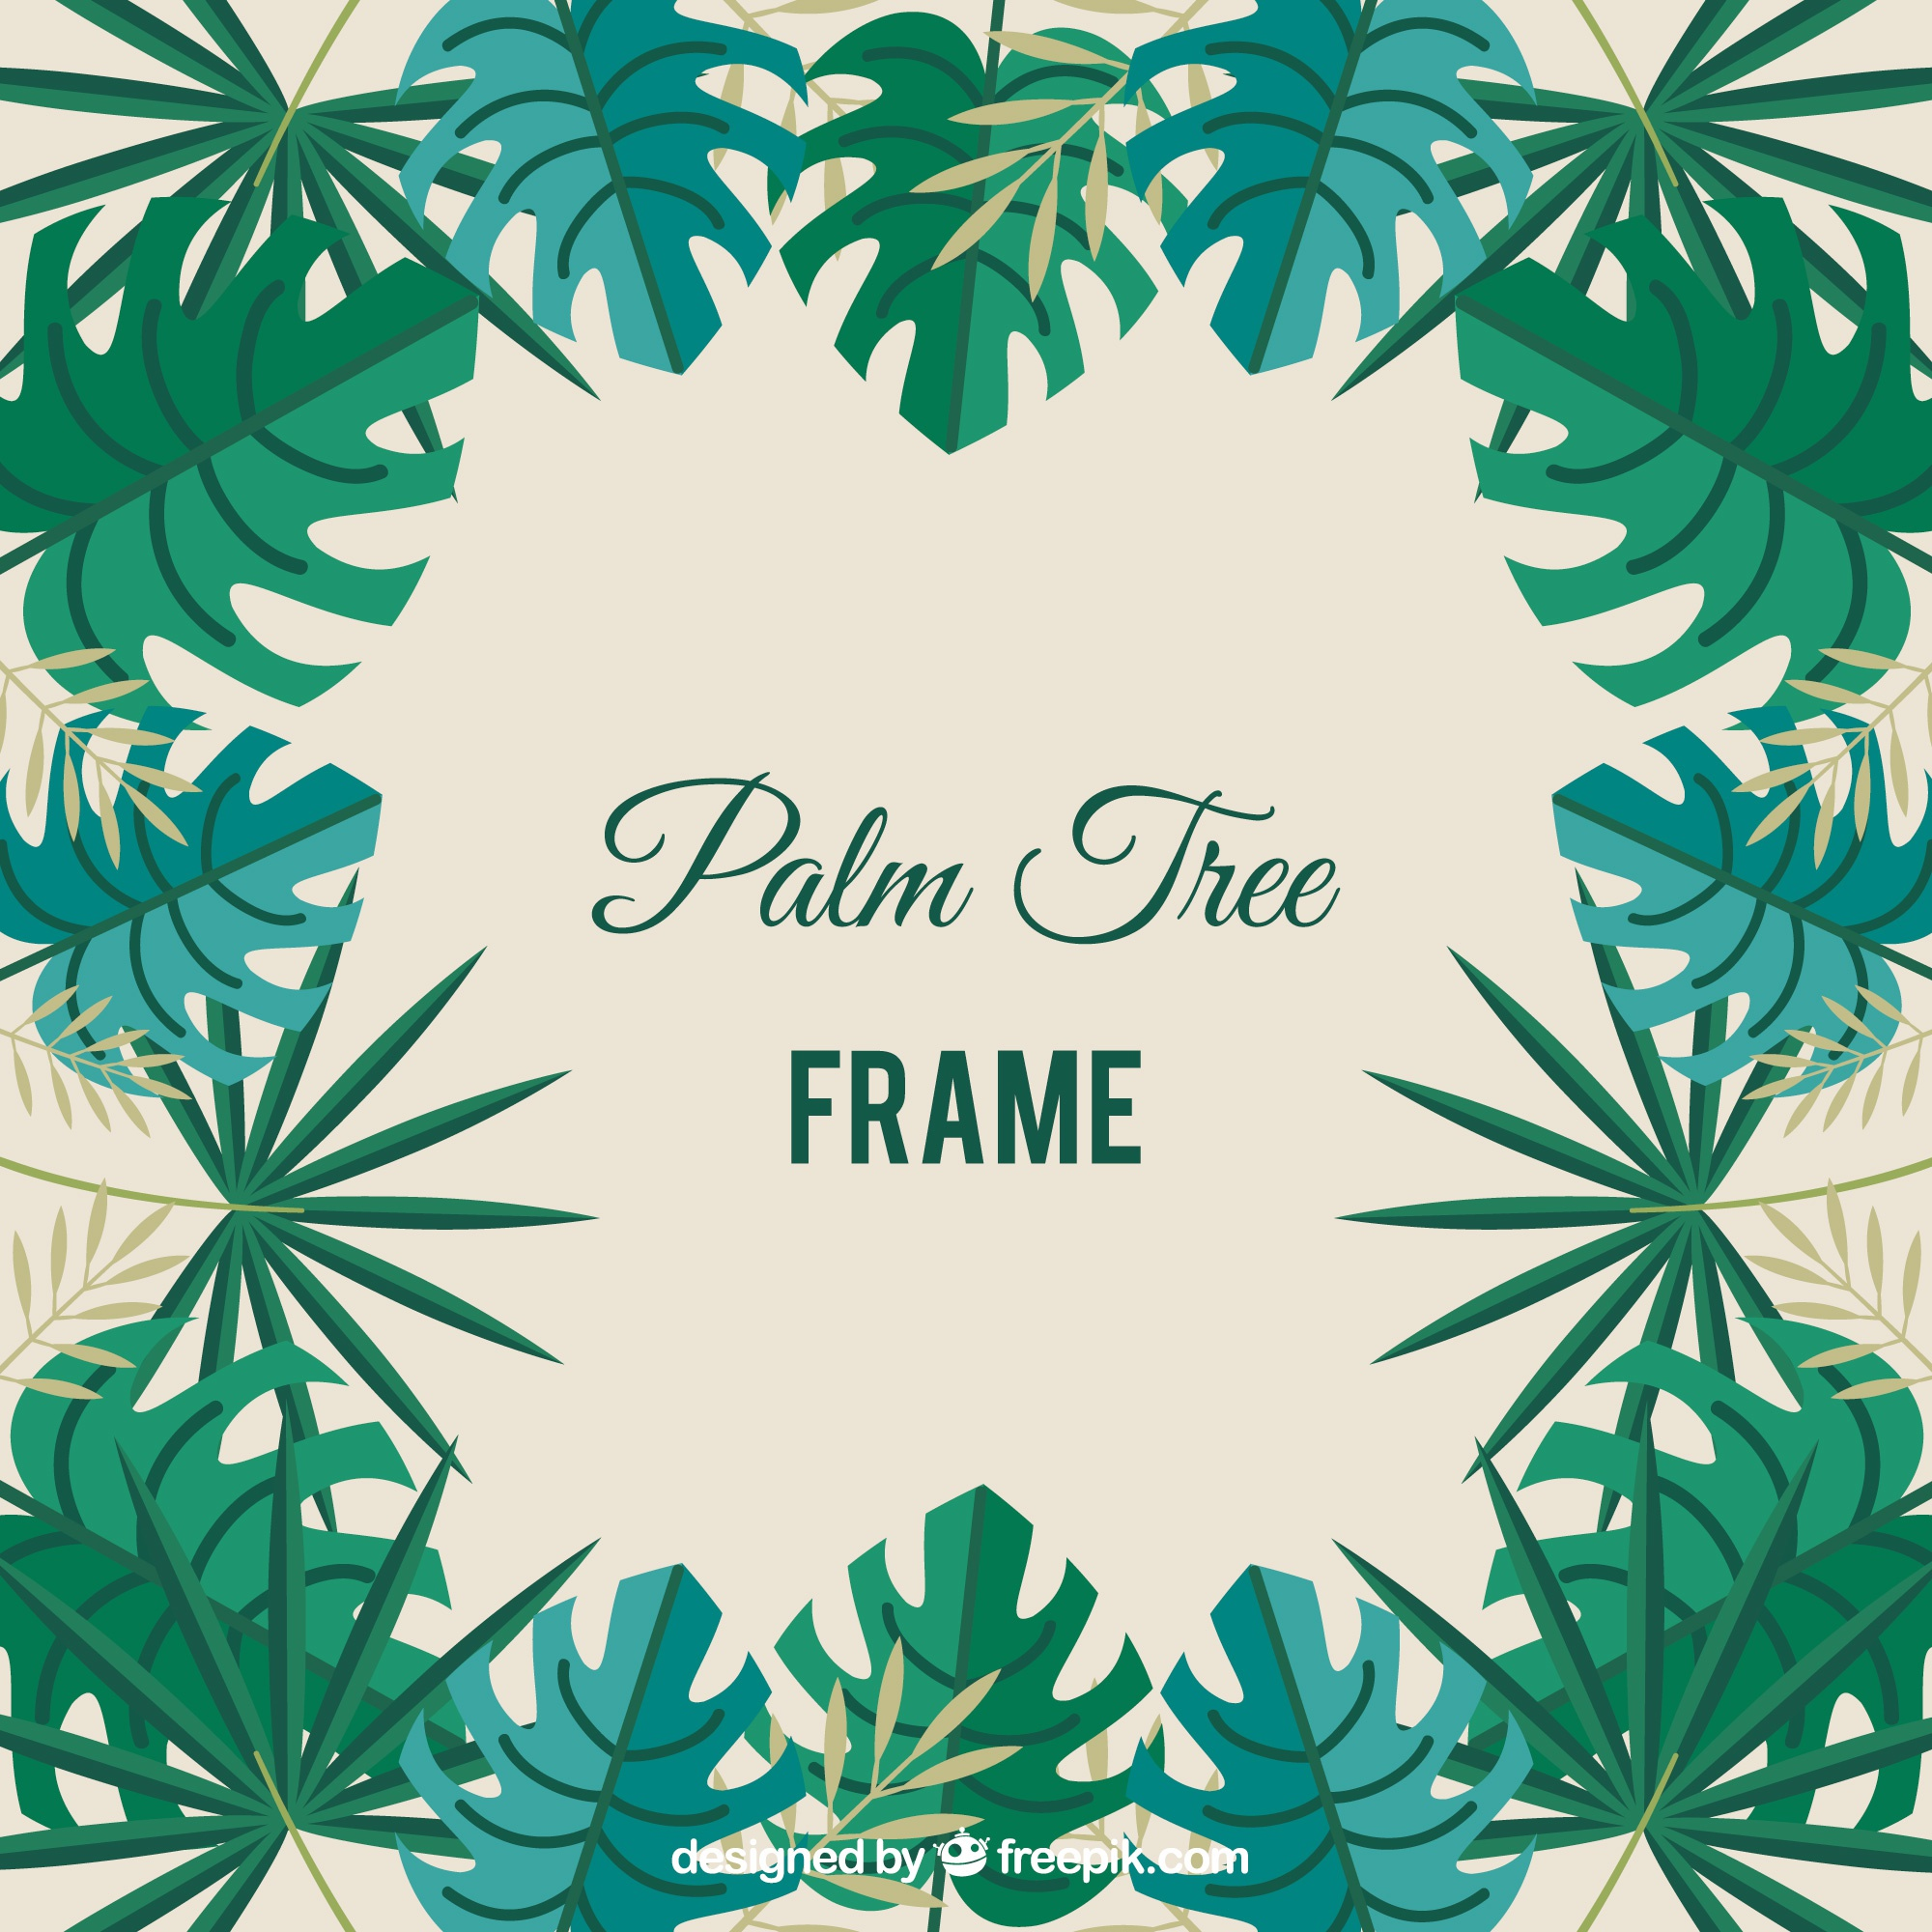 Palm tree frame in green tones